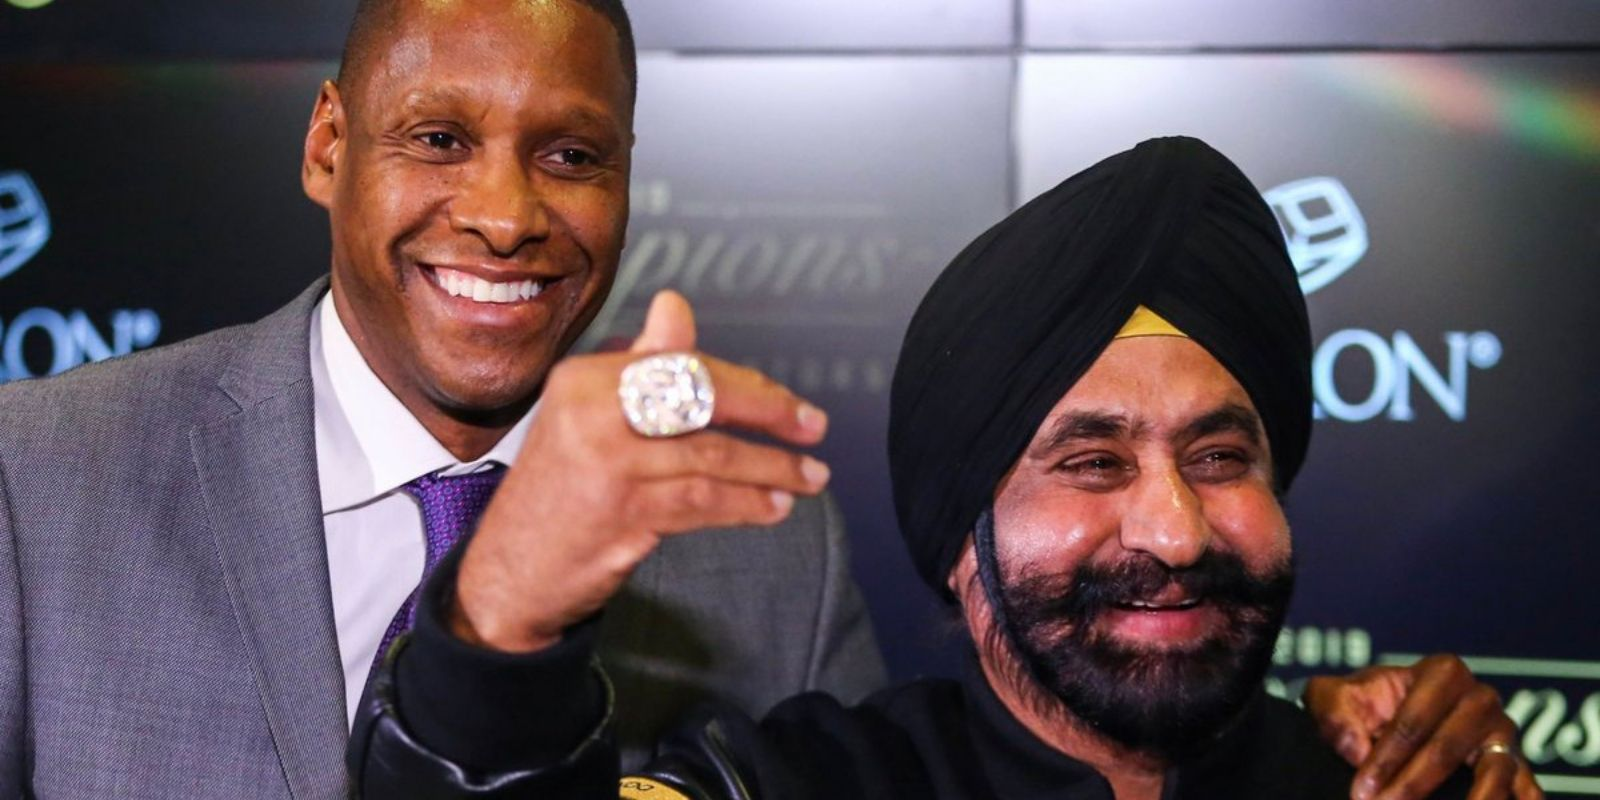 Raptors superfan awarded with personal championship ring